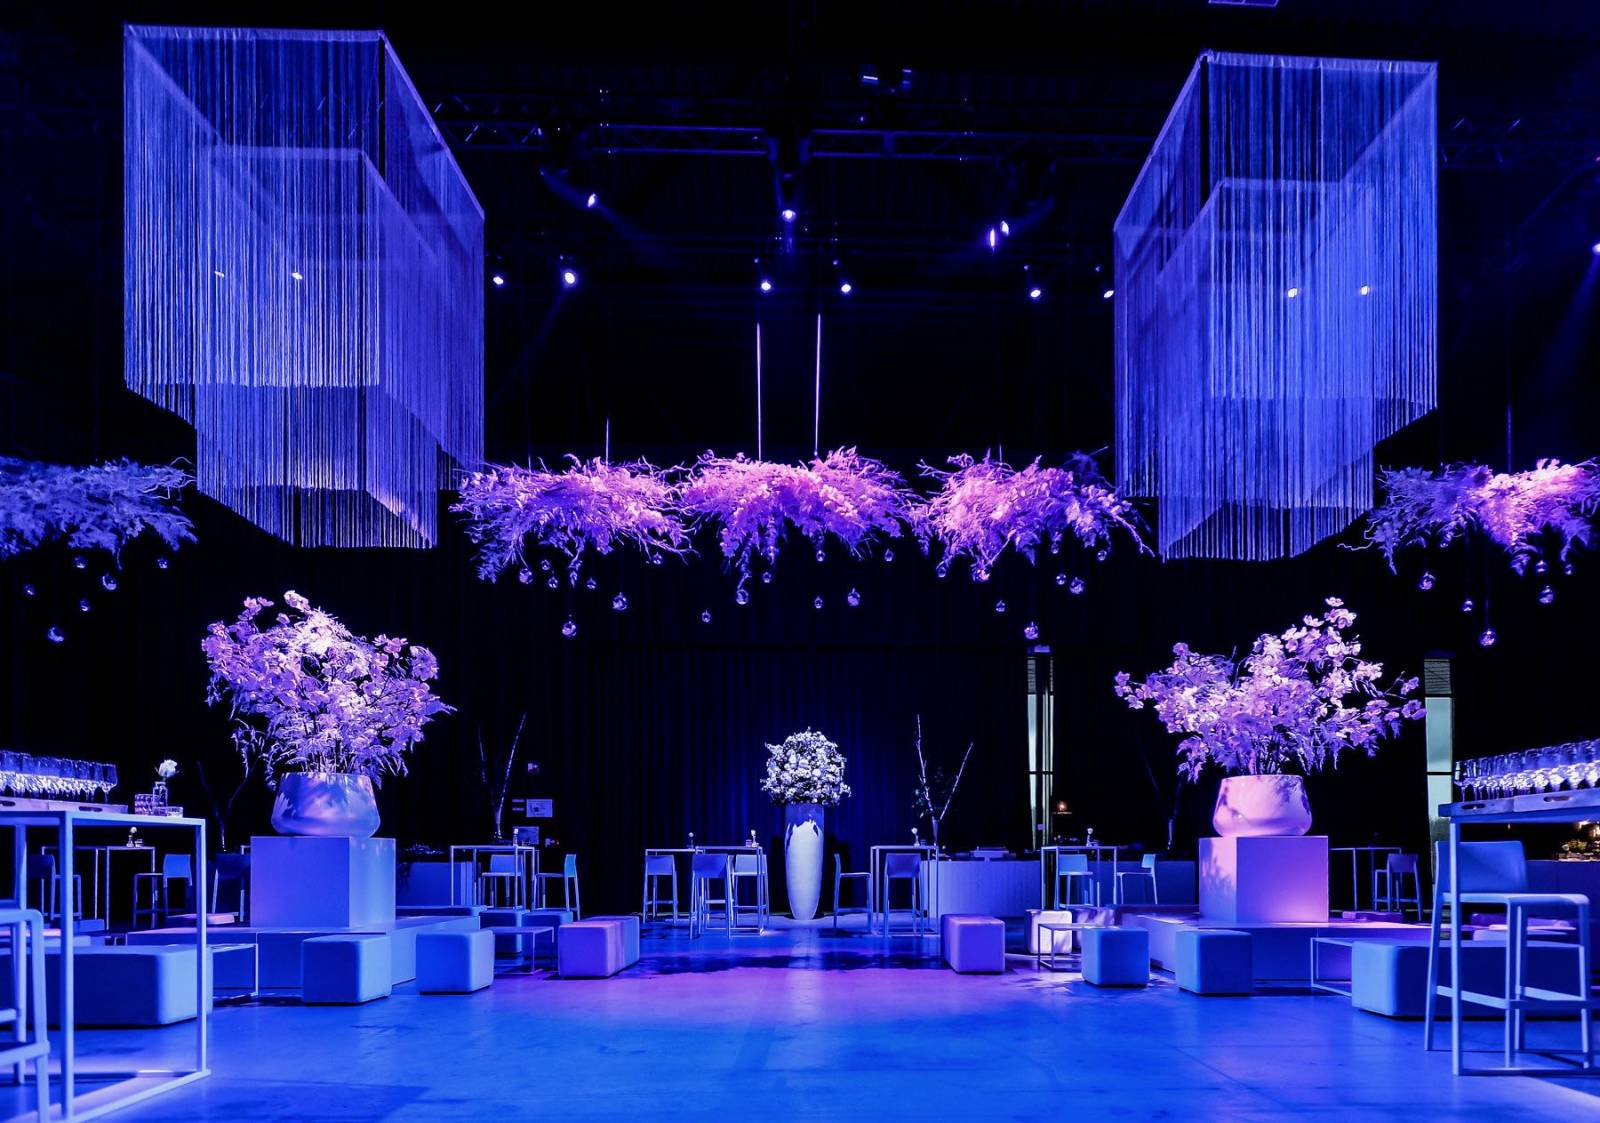 Docks Dome - Eventlocatie - Feestzaal - Brussel - House of Events - 26